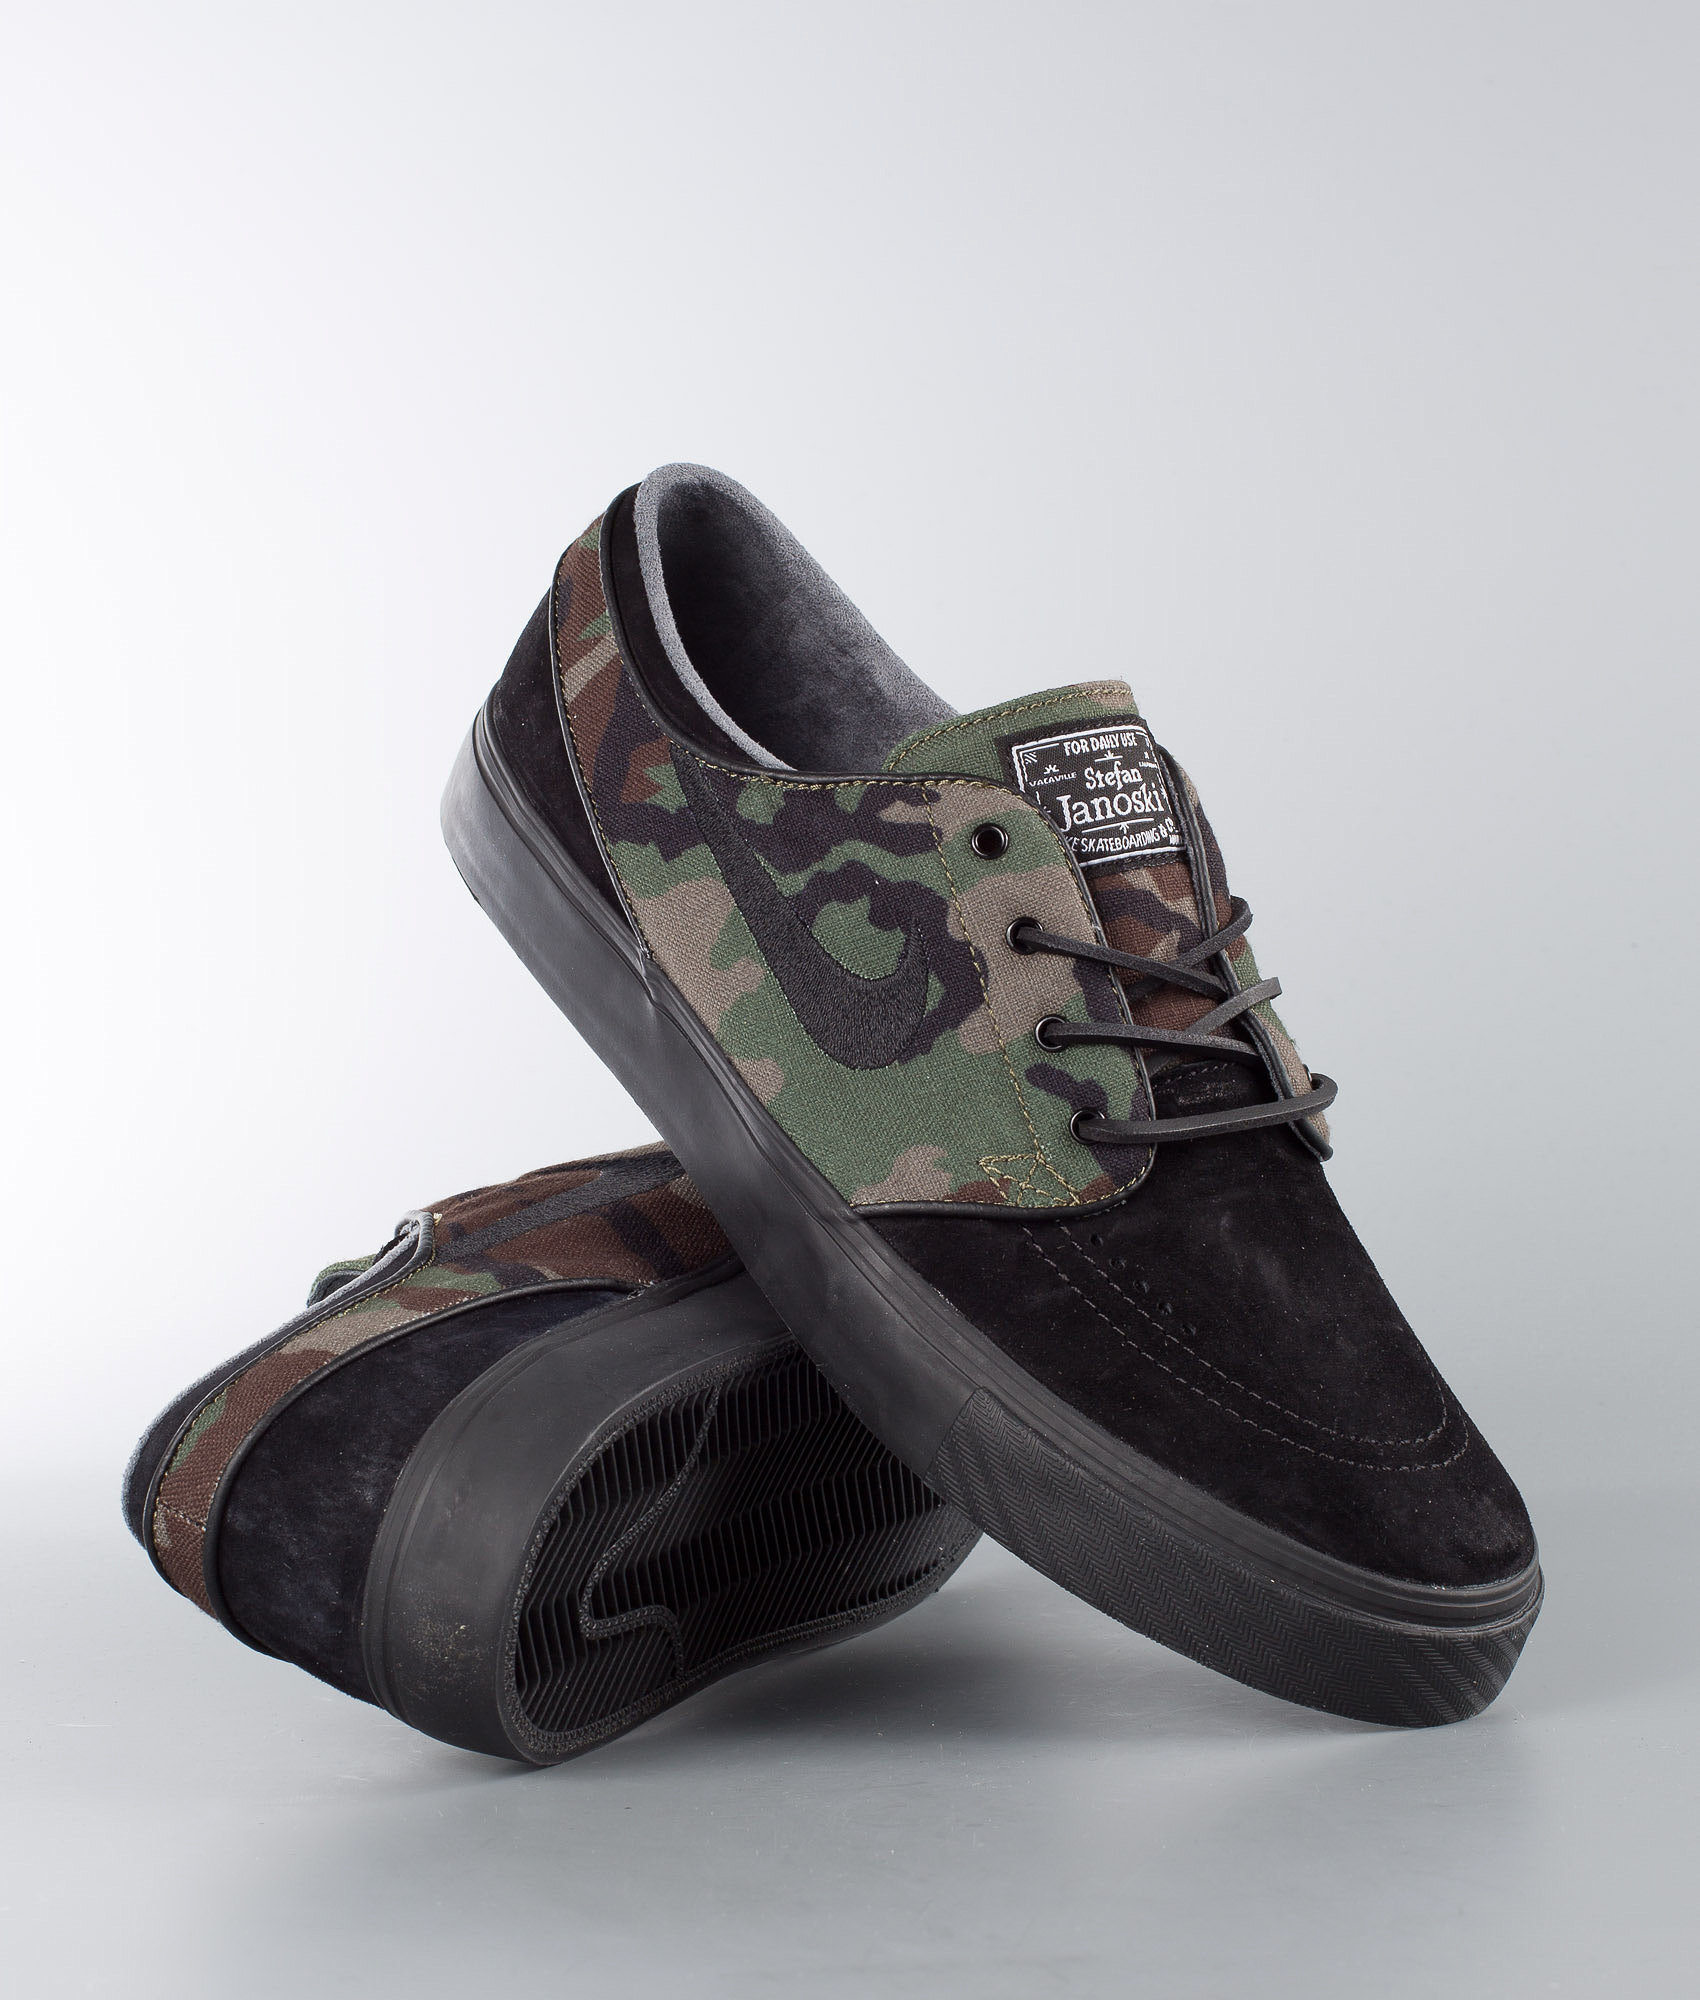 2a569a442 Nike Zoom Stefan Janoski OG Shoes Black Black-Medium Olive-White ...